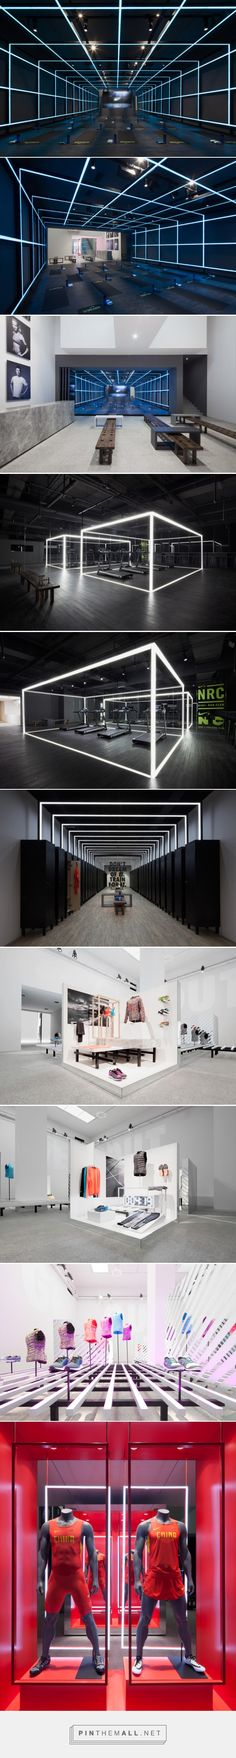 coordination asia installs the NIKE studio within beijing gallery - created via http://pinthemall.net